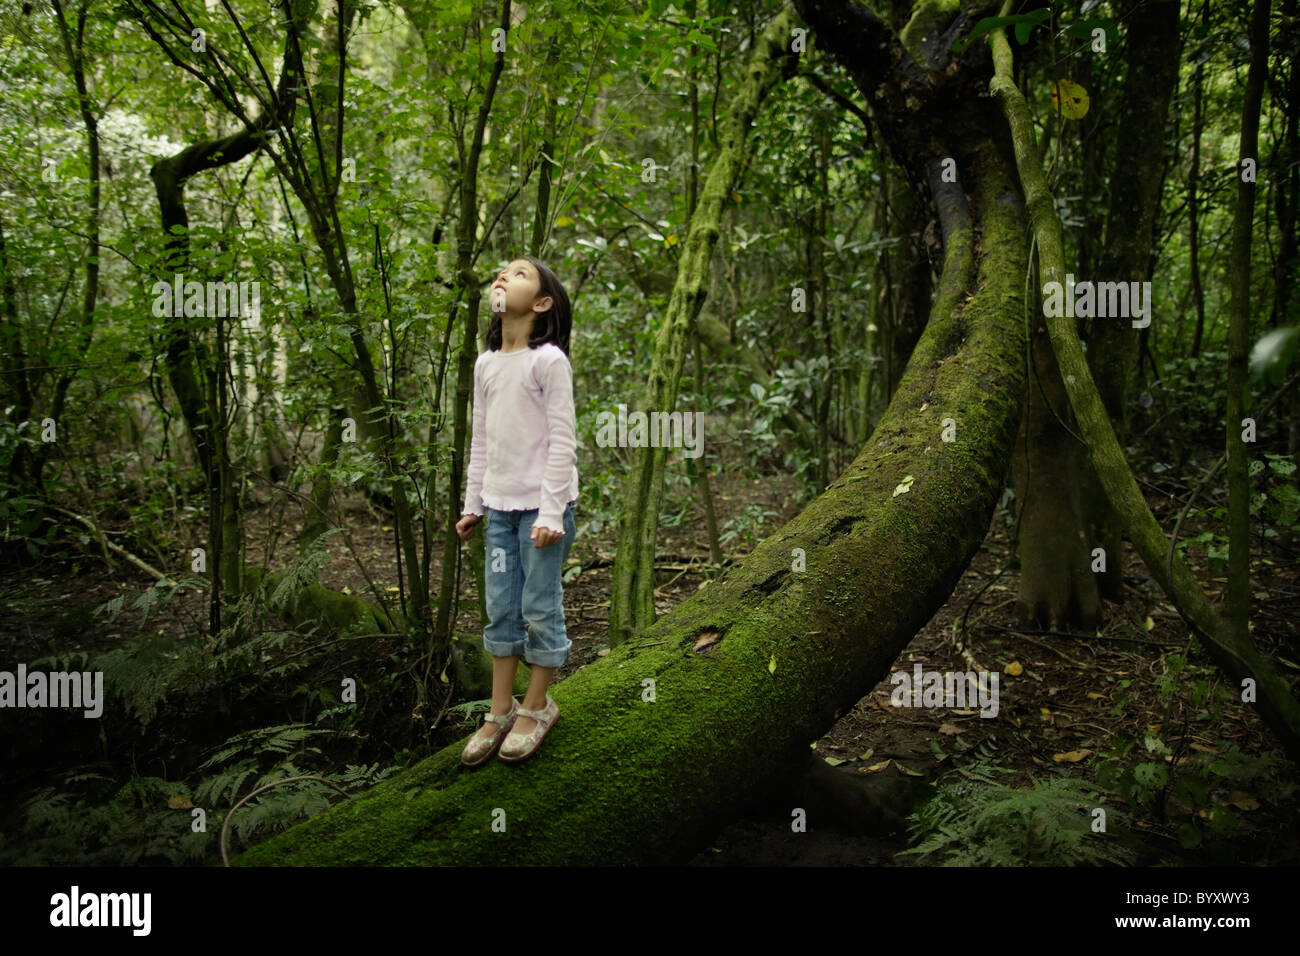 Girl stands on tree trunk and looks up into forest canopy, New Zealand. - Stock Image